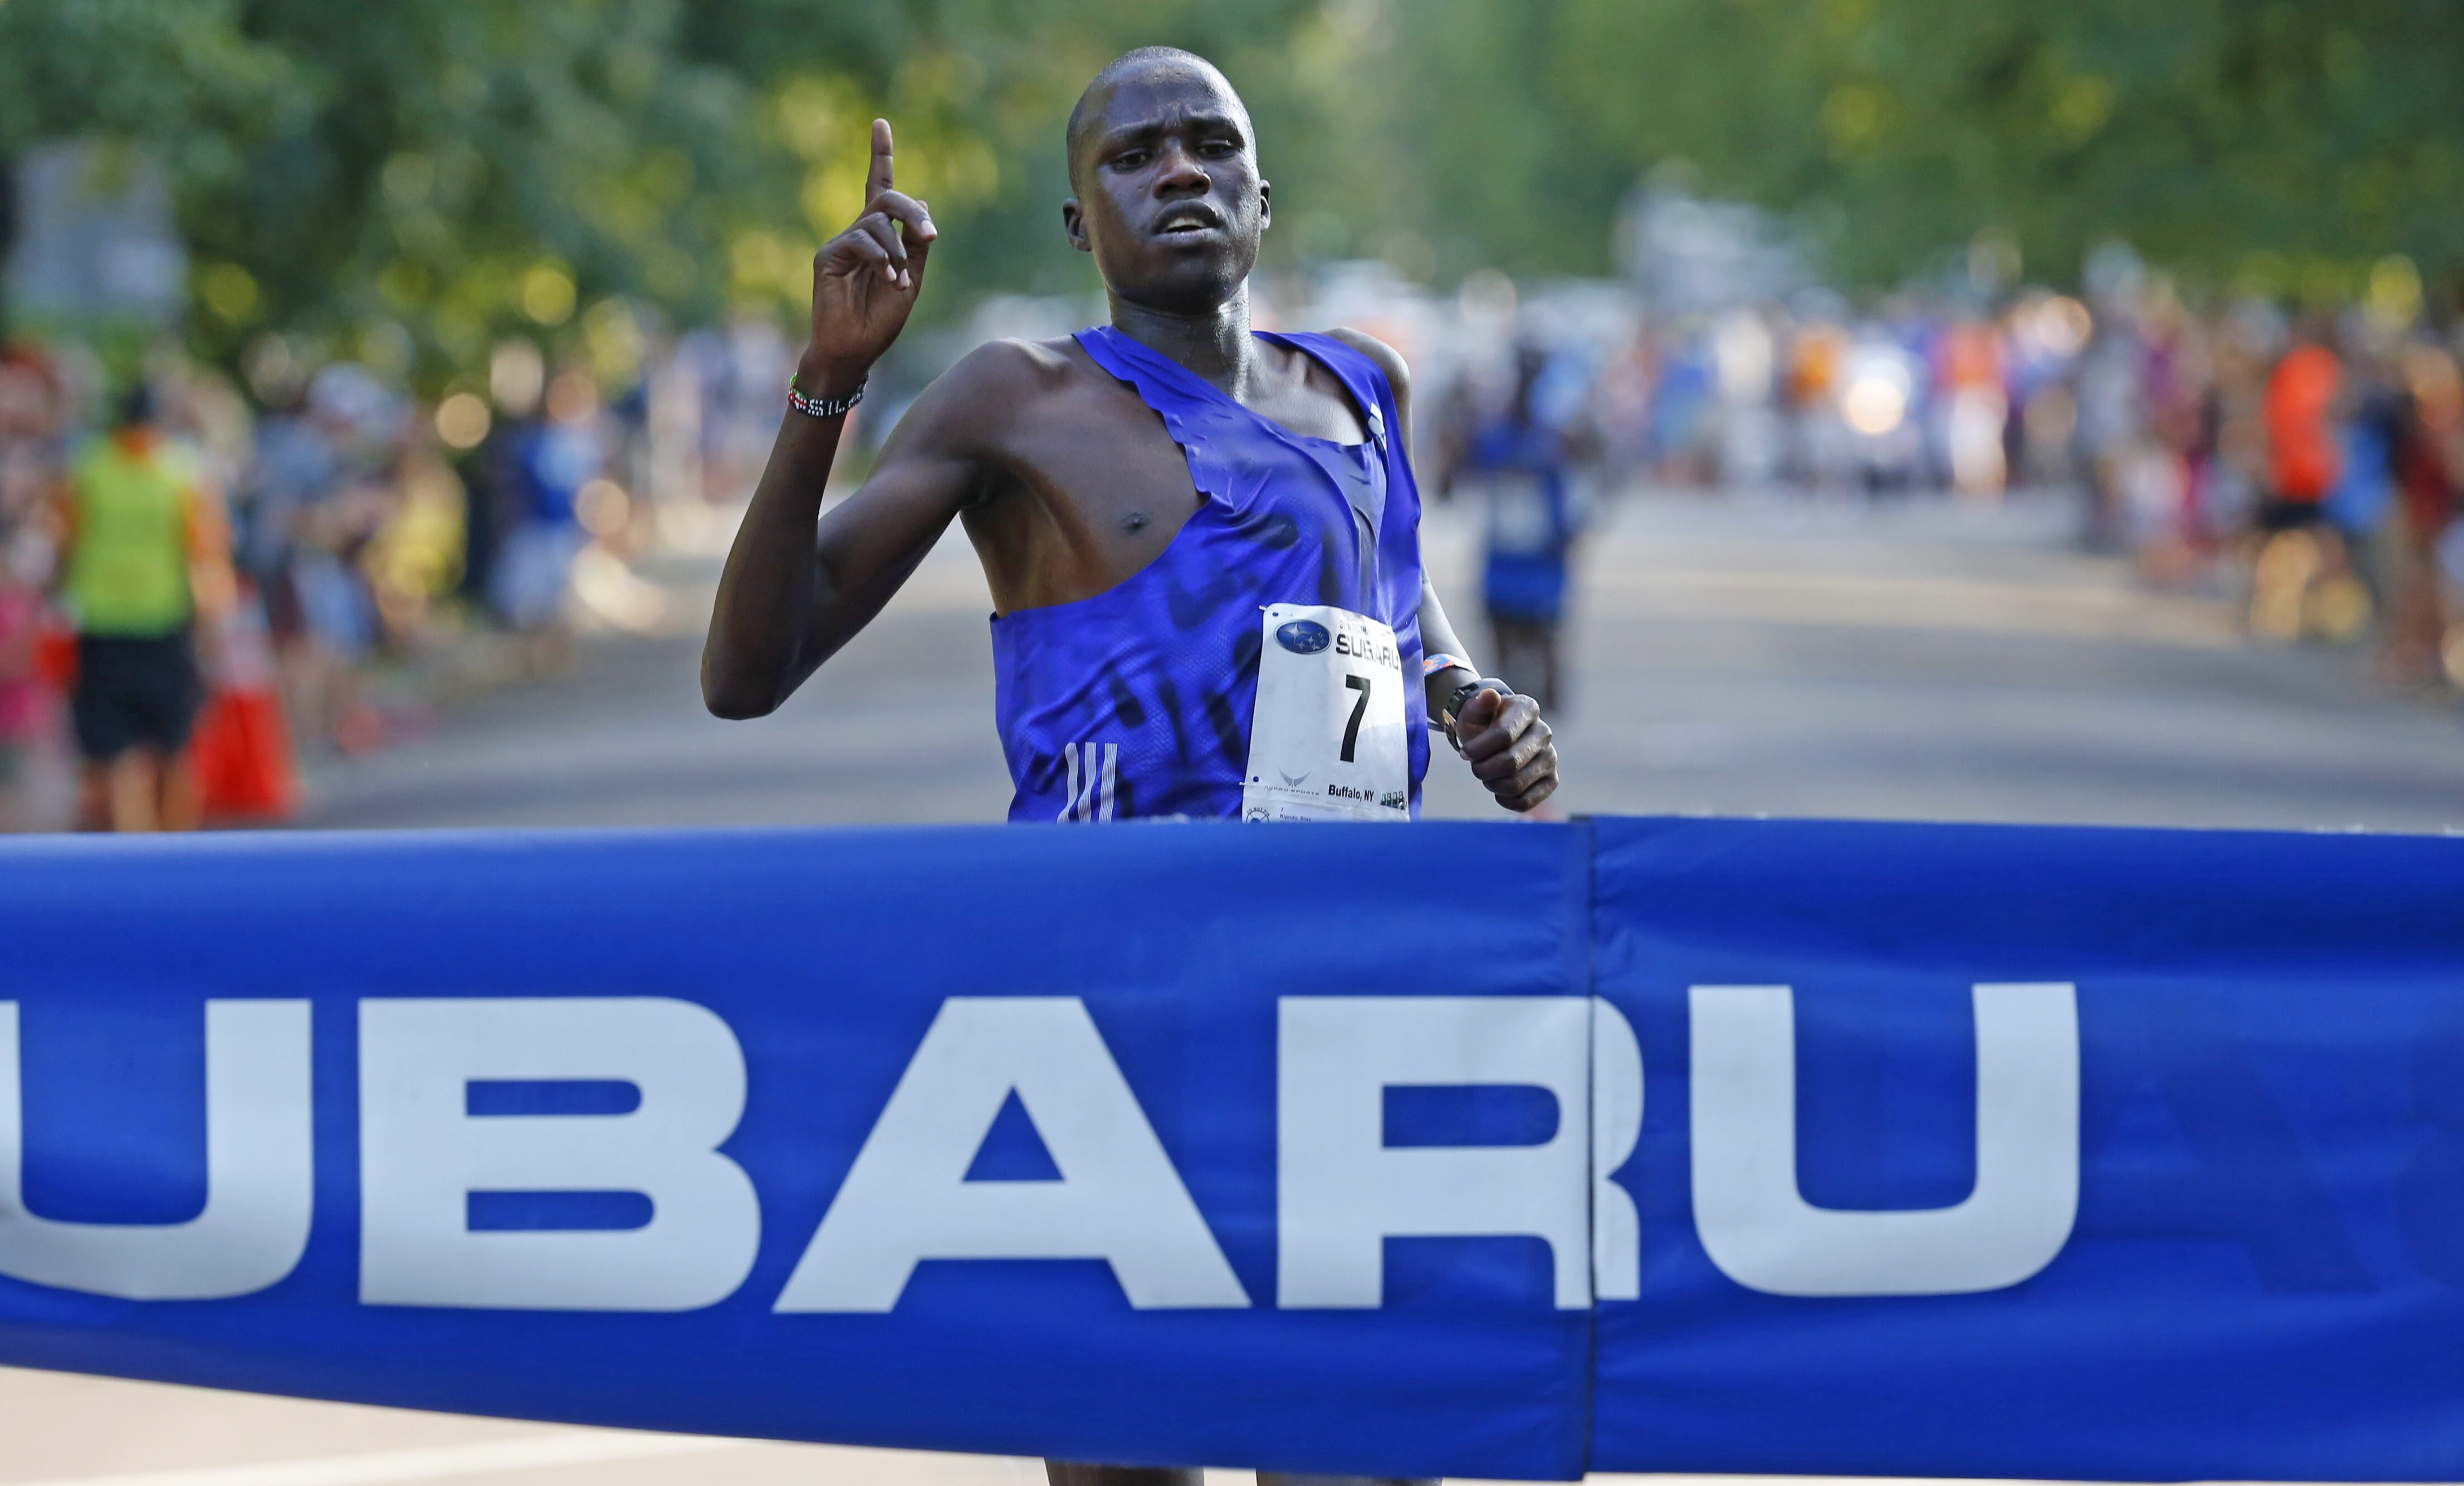 Silos Kipruto hits the finish line first in 18:13 at Friday's Subaru 4 Mile Chase. Kipruto had a 4:26 split for the last mile.